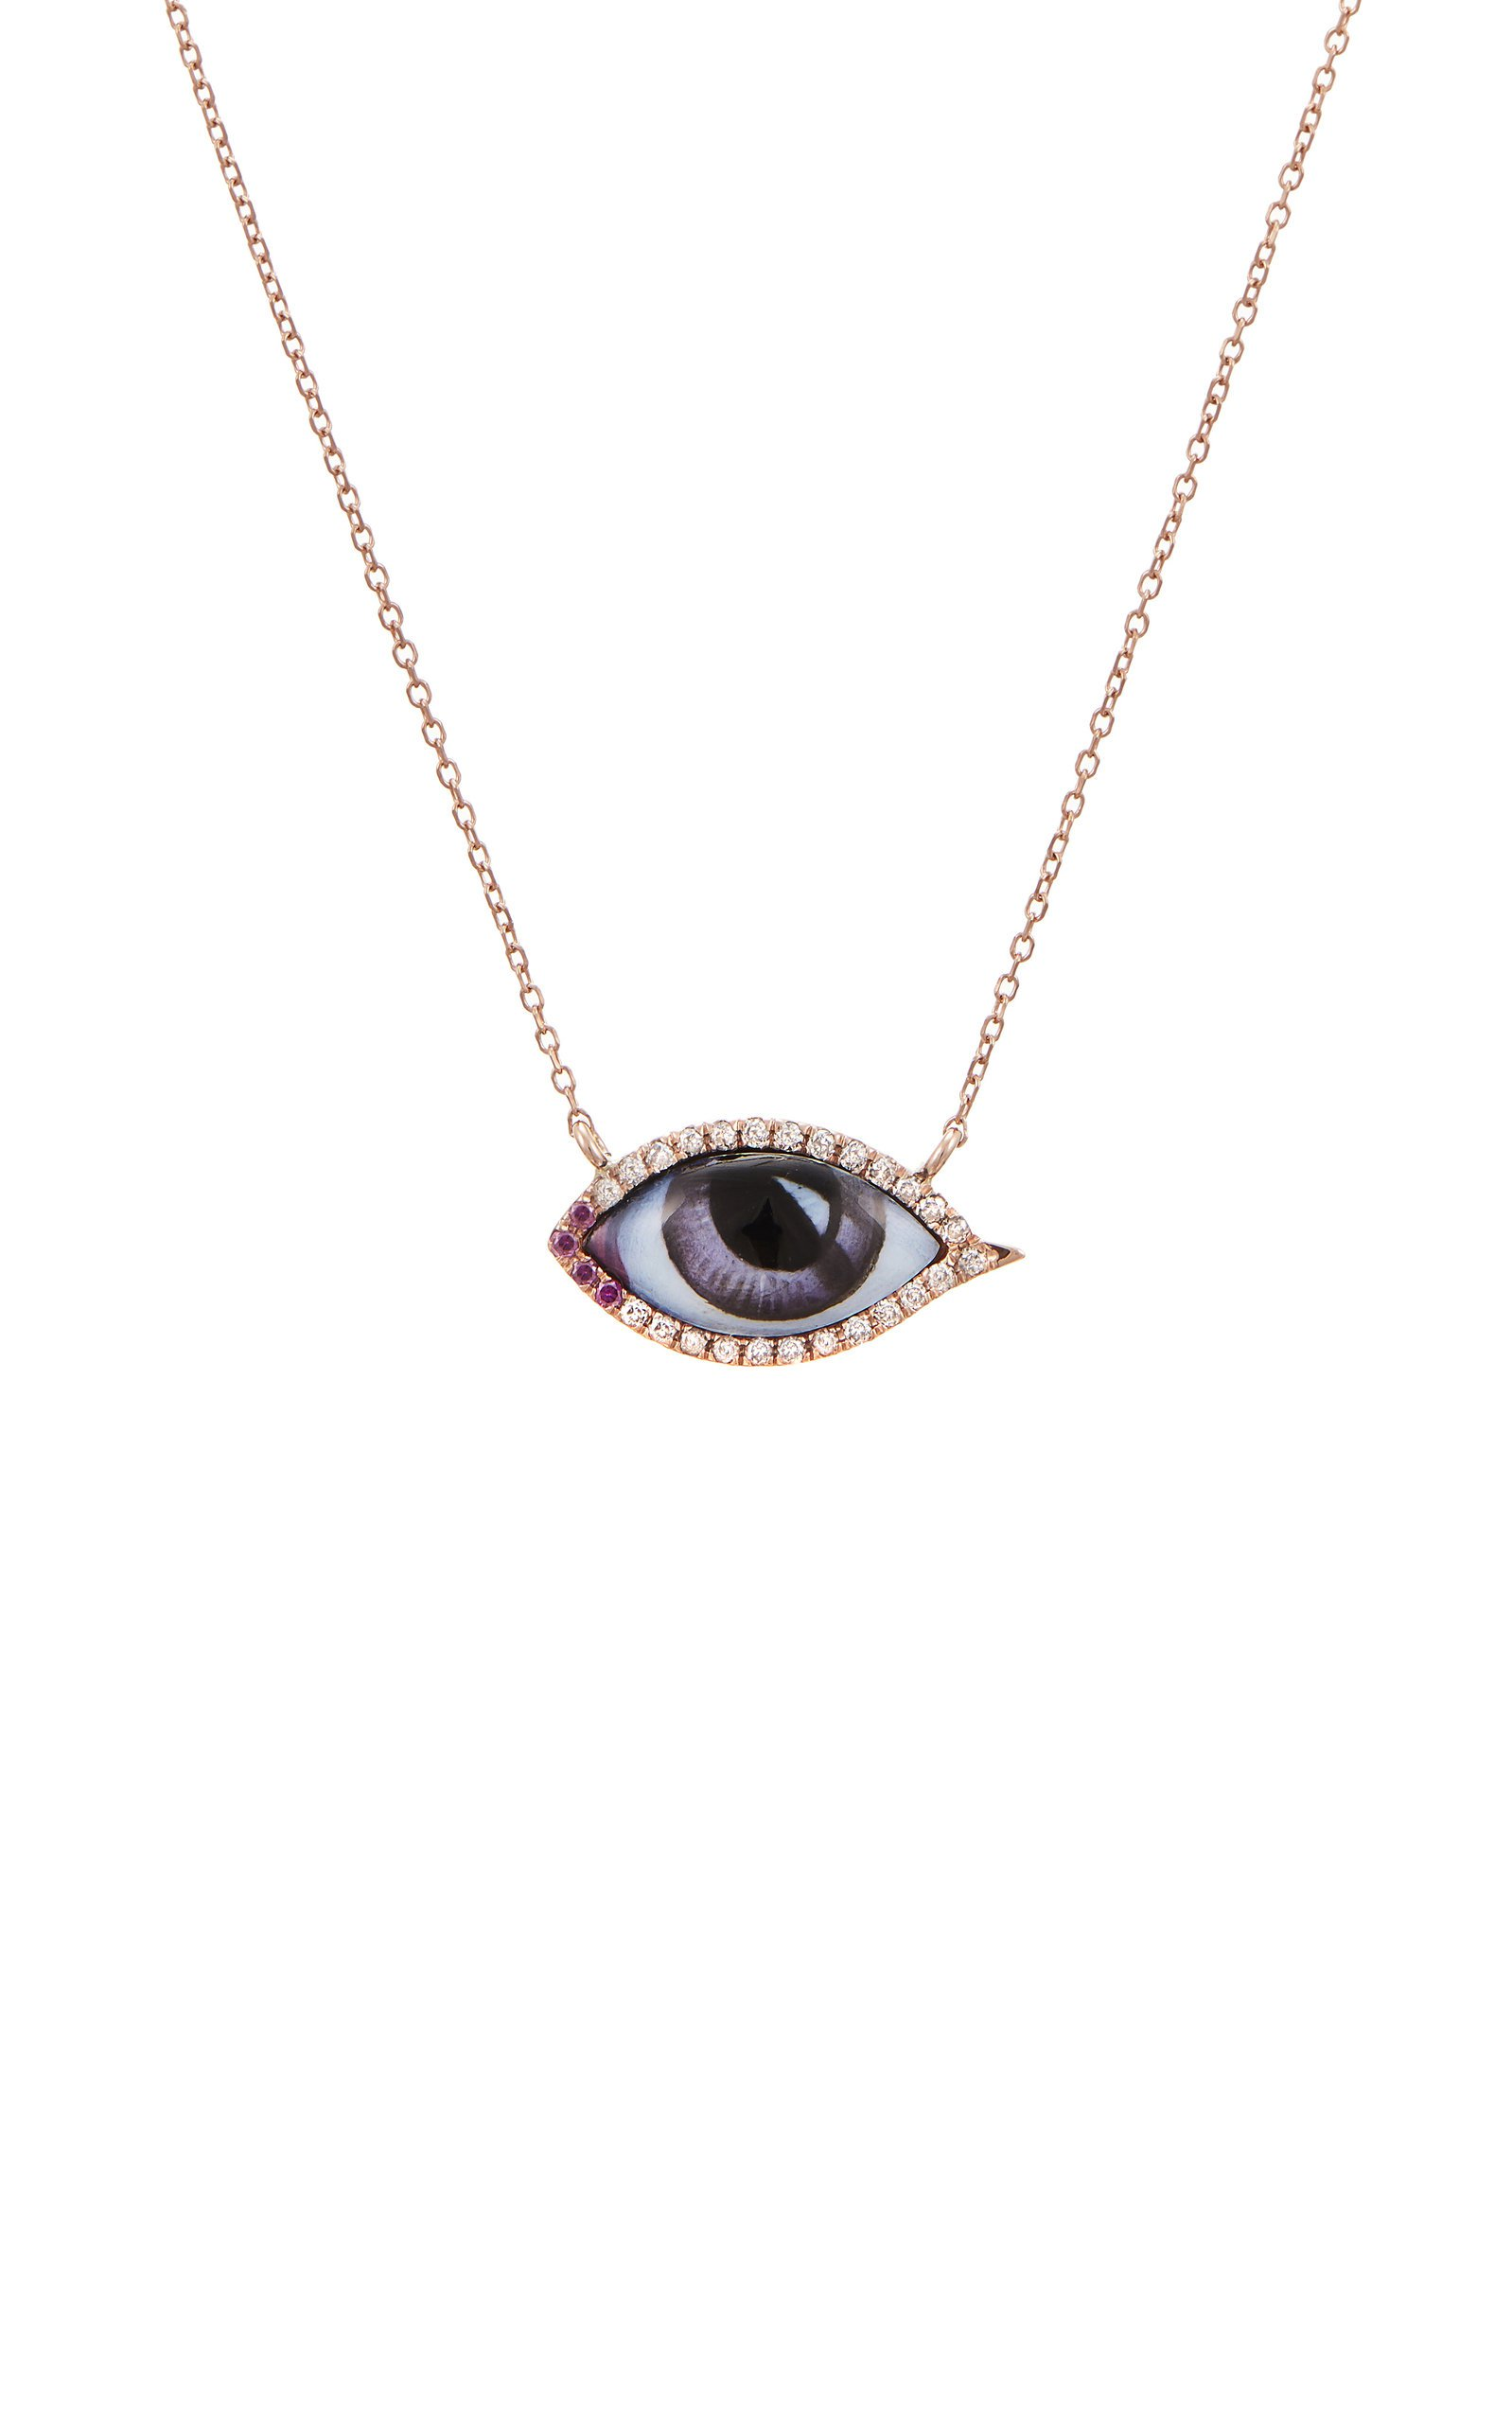 Lito 14K Rose Gold & Enamel Eye Necklace